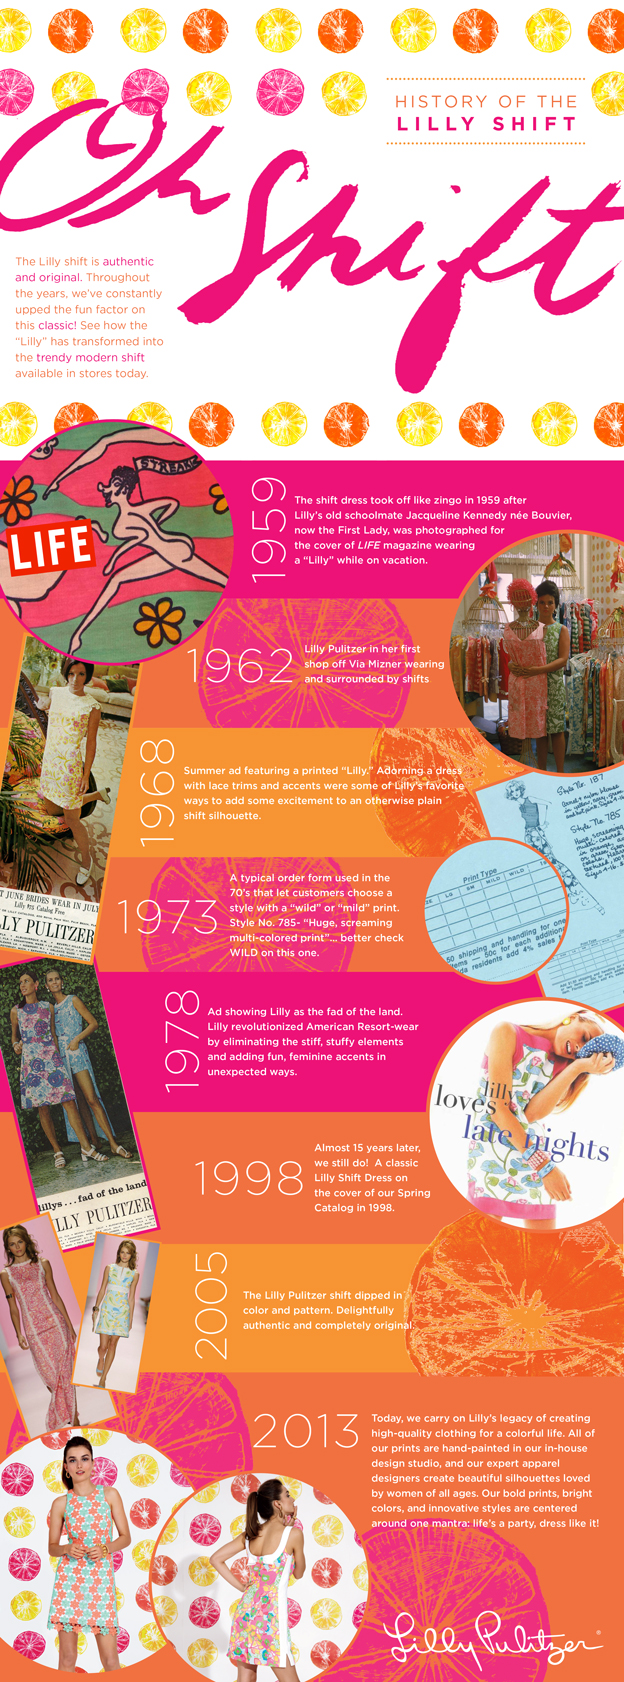 Lilly Pulitzer - The Story